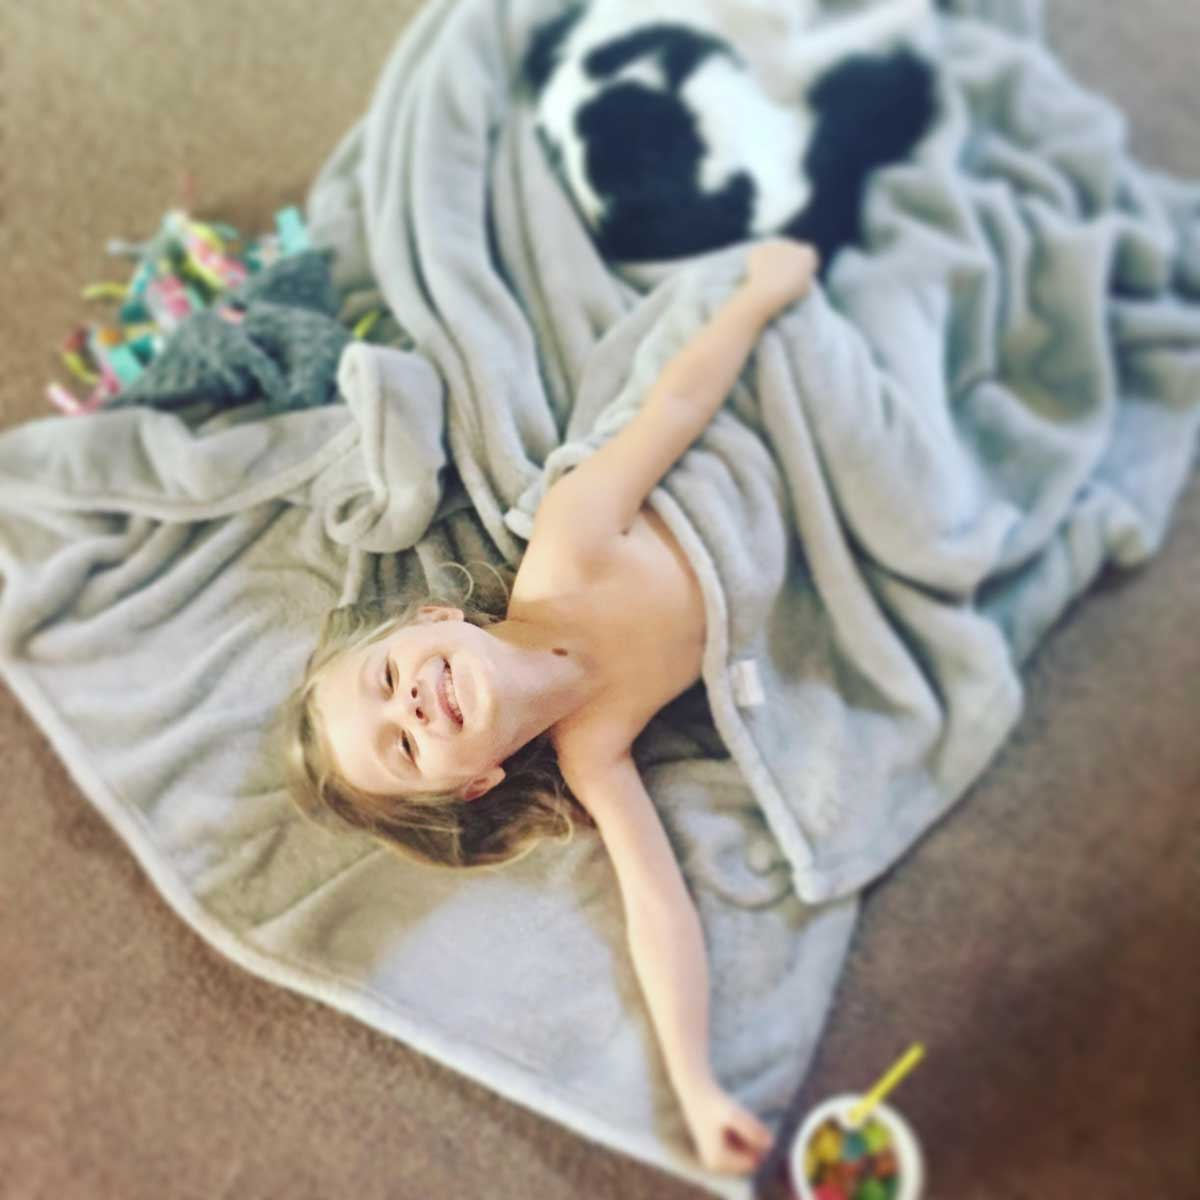 """My Tummy is Fat"" – How One Mom Responded to Her Sweet Girl"